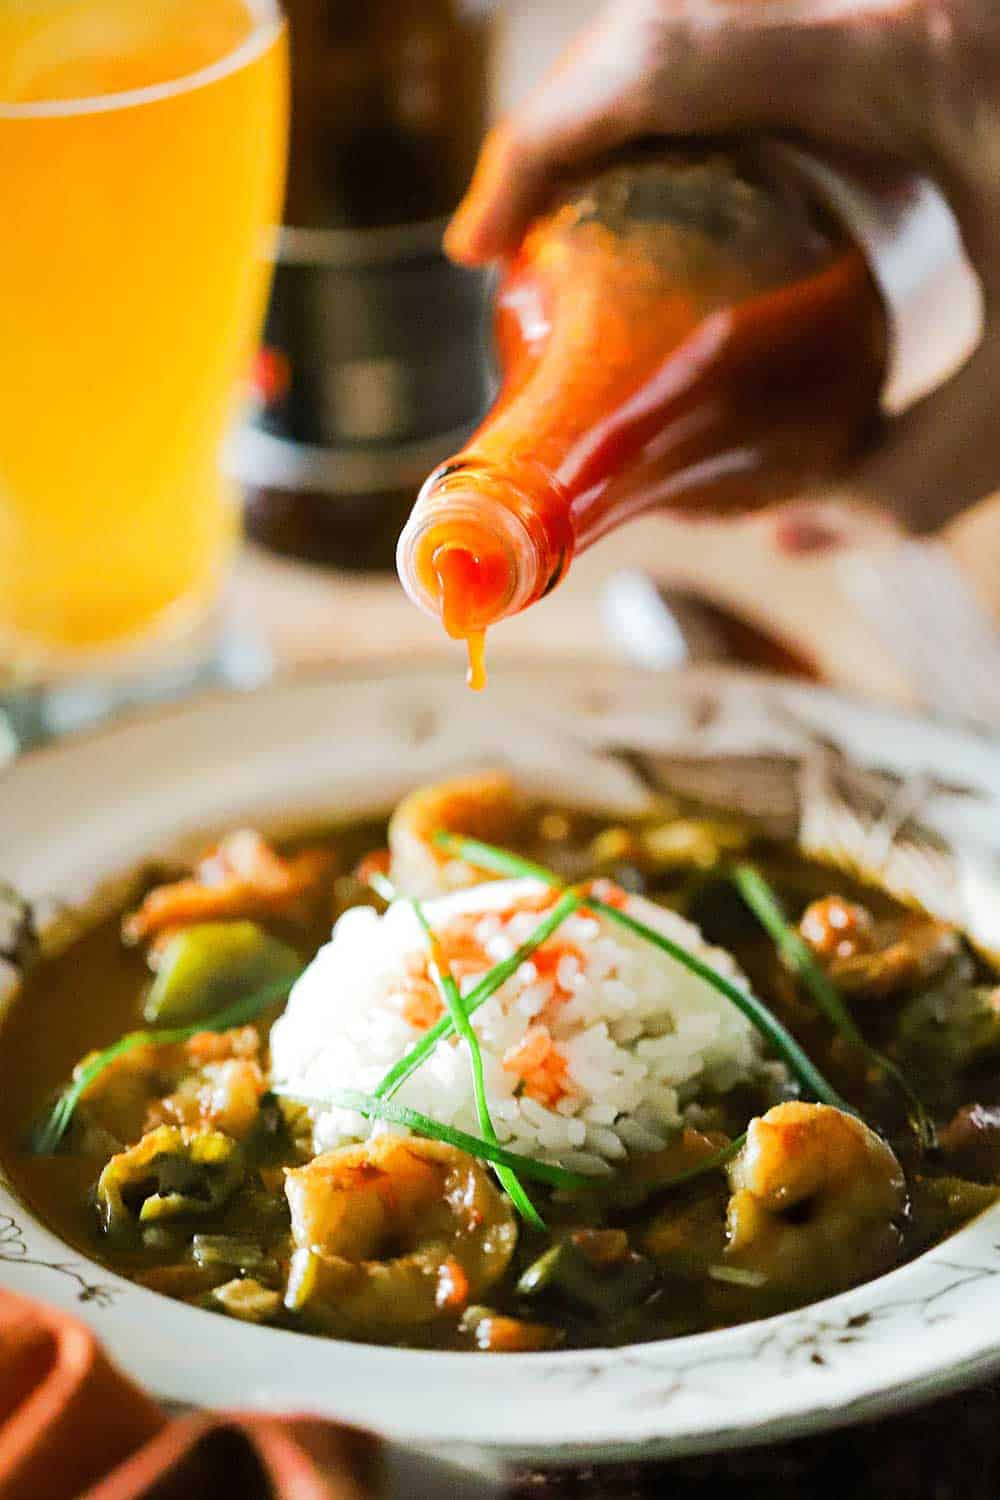 A bottle of Crystals hot sauce is being poured onto a bowl filled with shrimp gumbo with a mound of white rice in the middle.